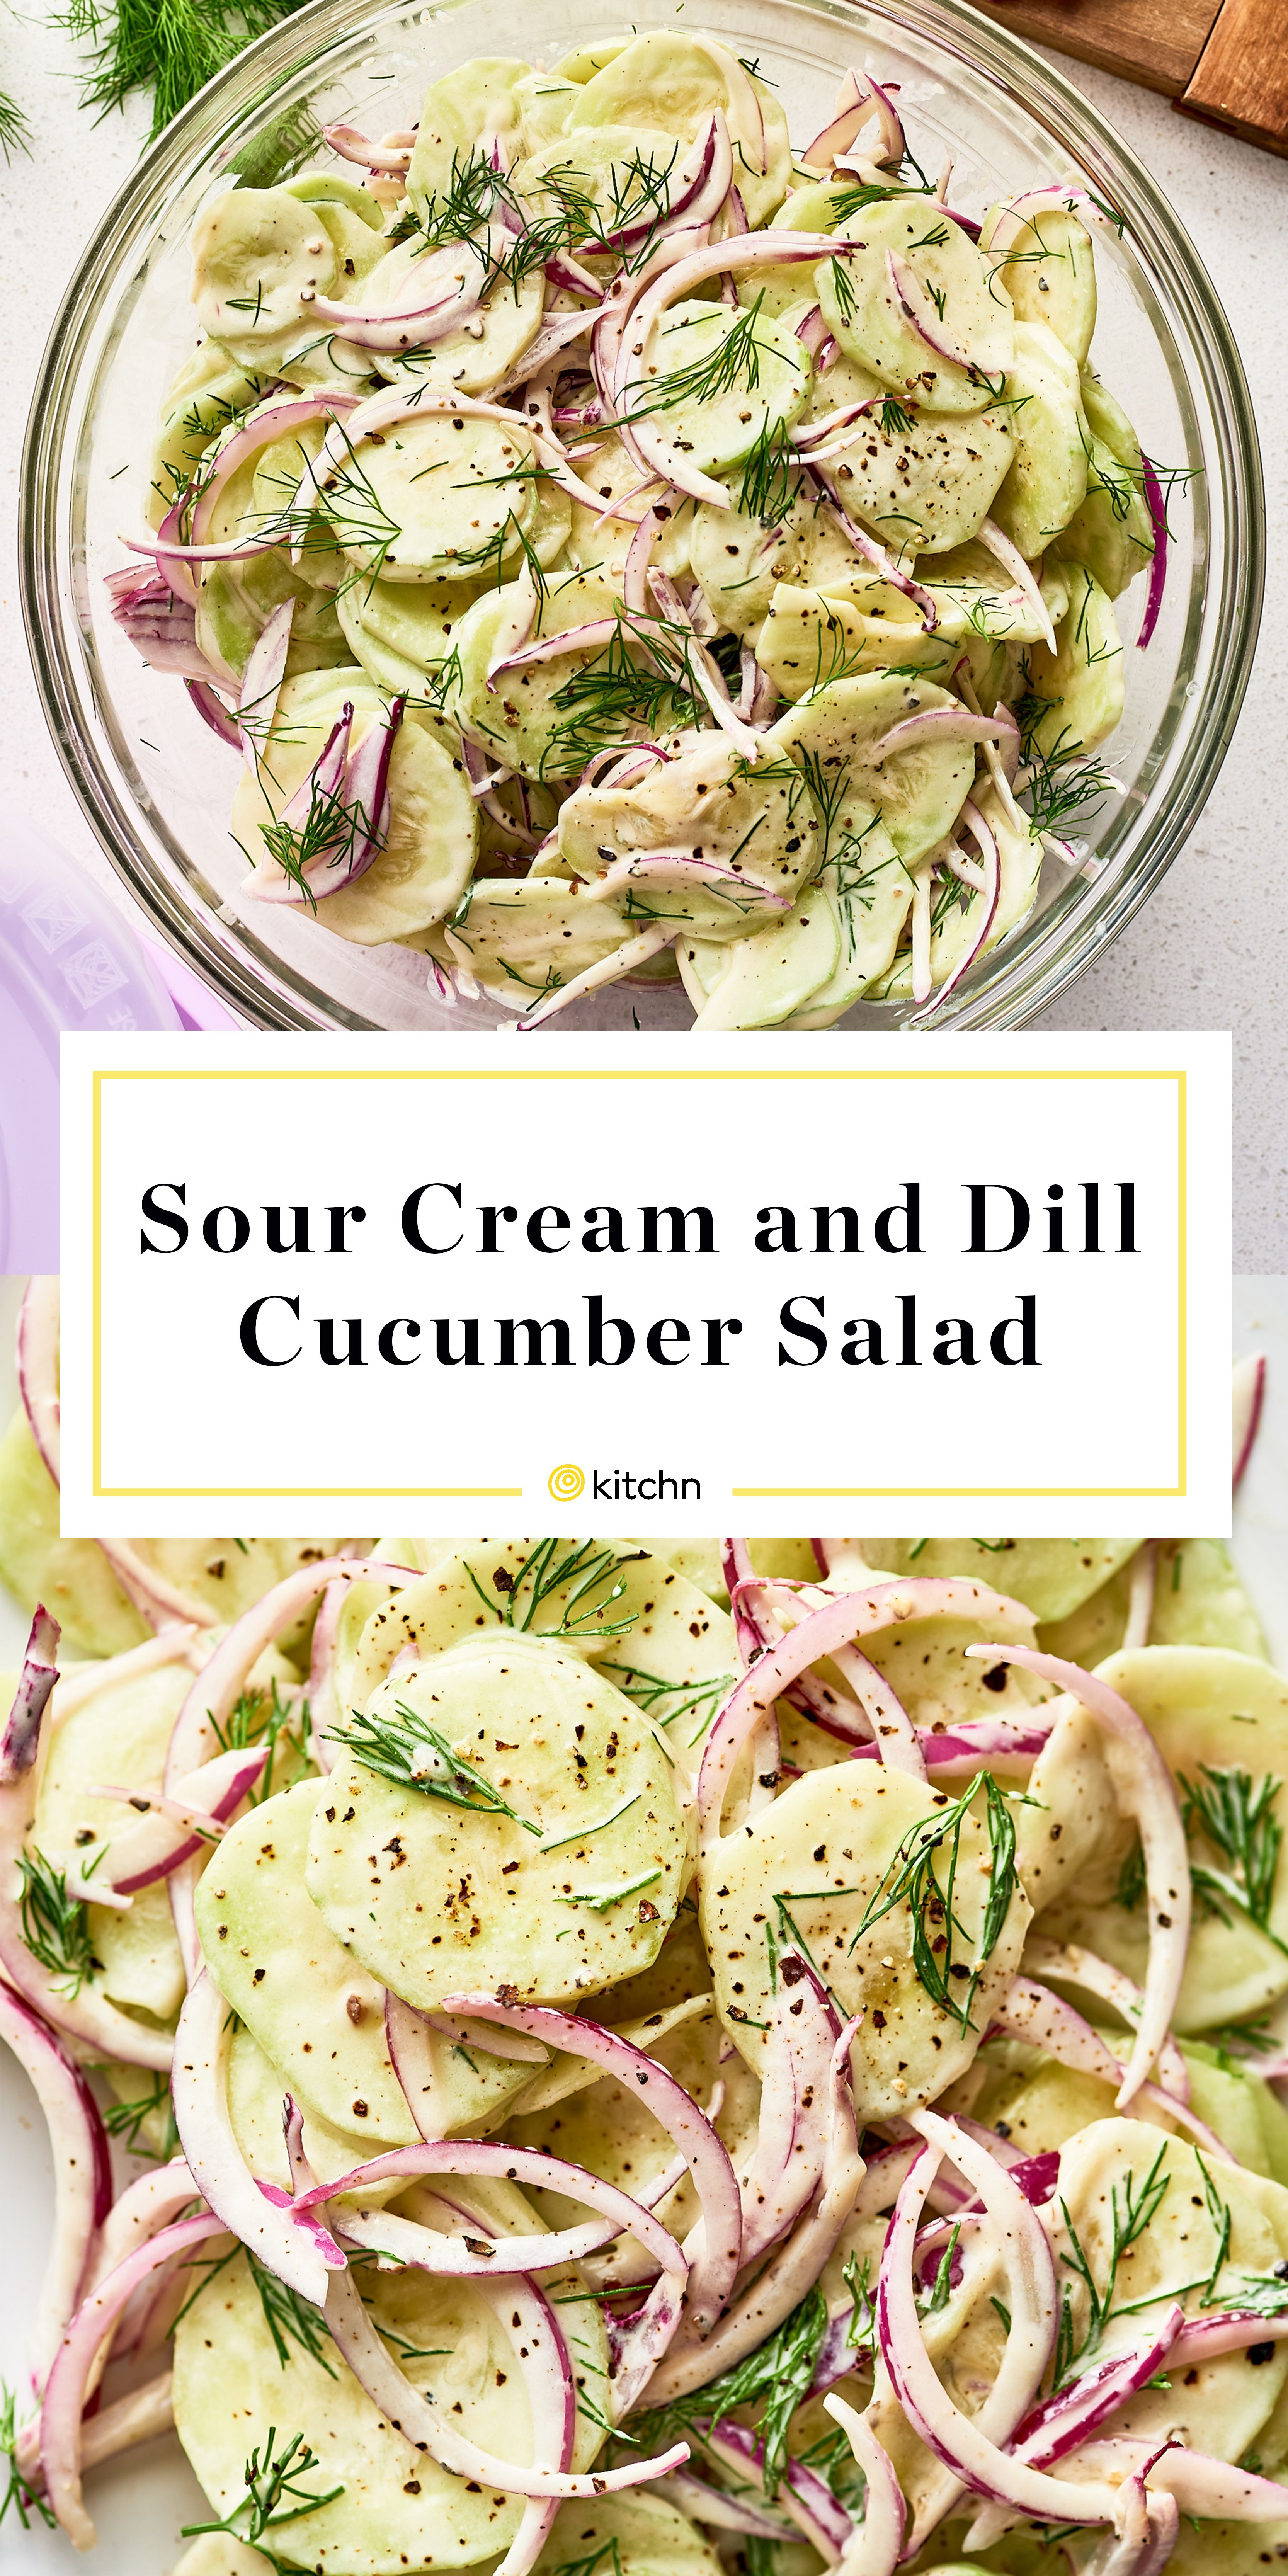 Recipe Sour Cream And Dill Cucumber Salad Recipe Cucumber Recipes Salad Cucumber Dill Salad Salad Recipes Healthy Lunch